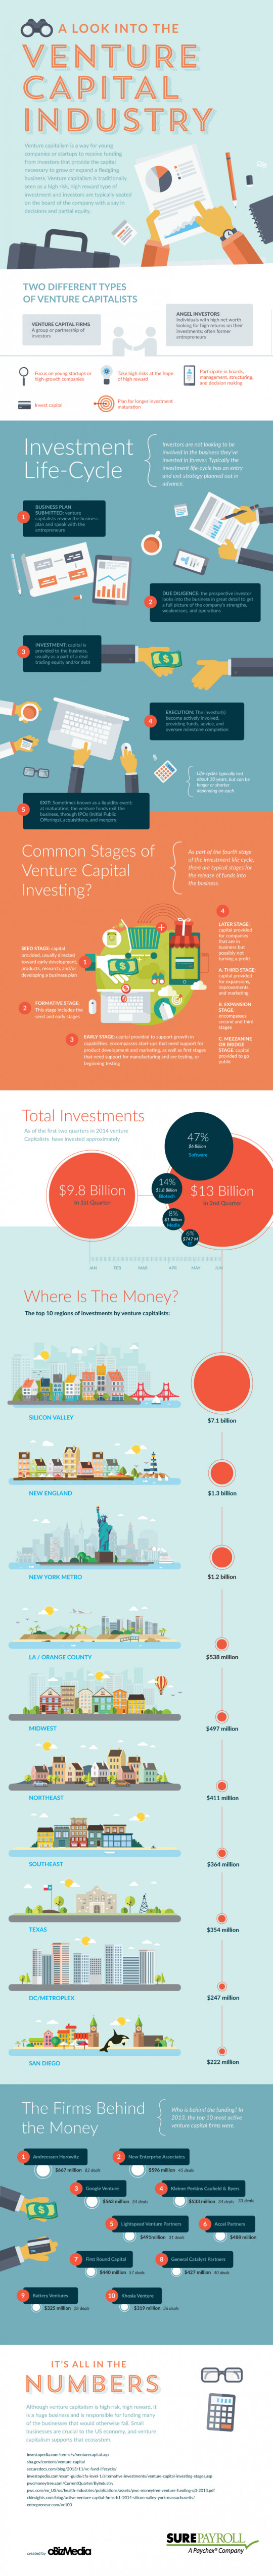 A Look Into The Venture Capital Industry